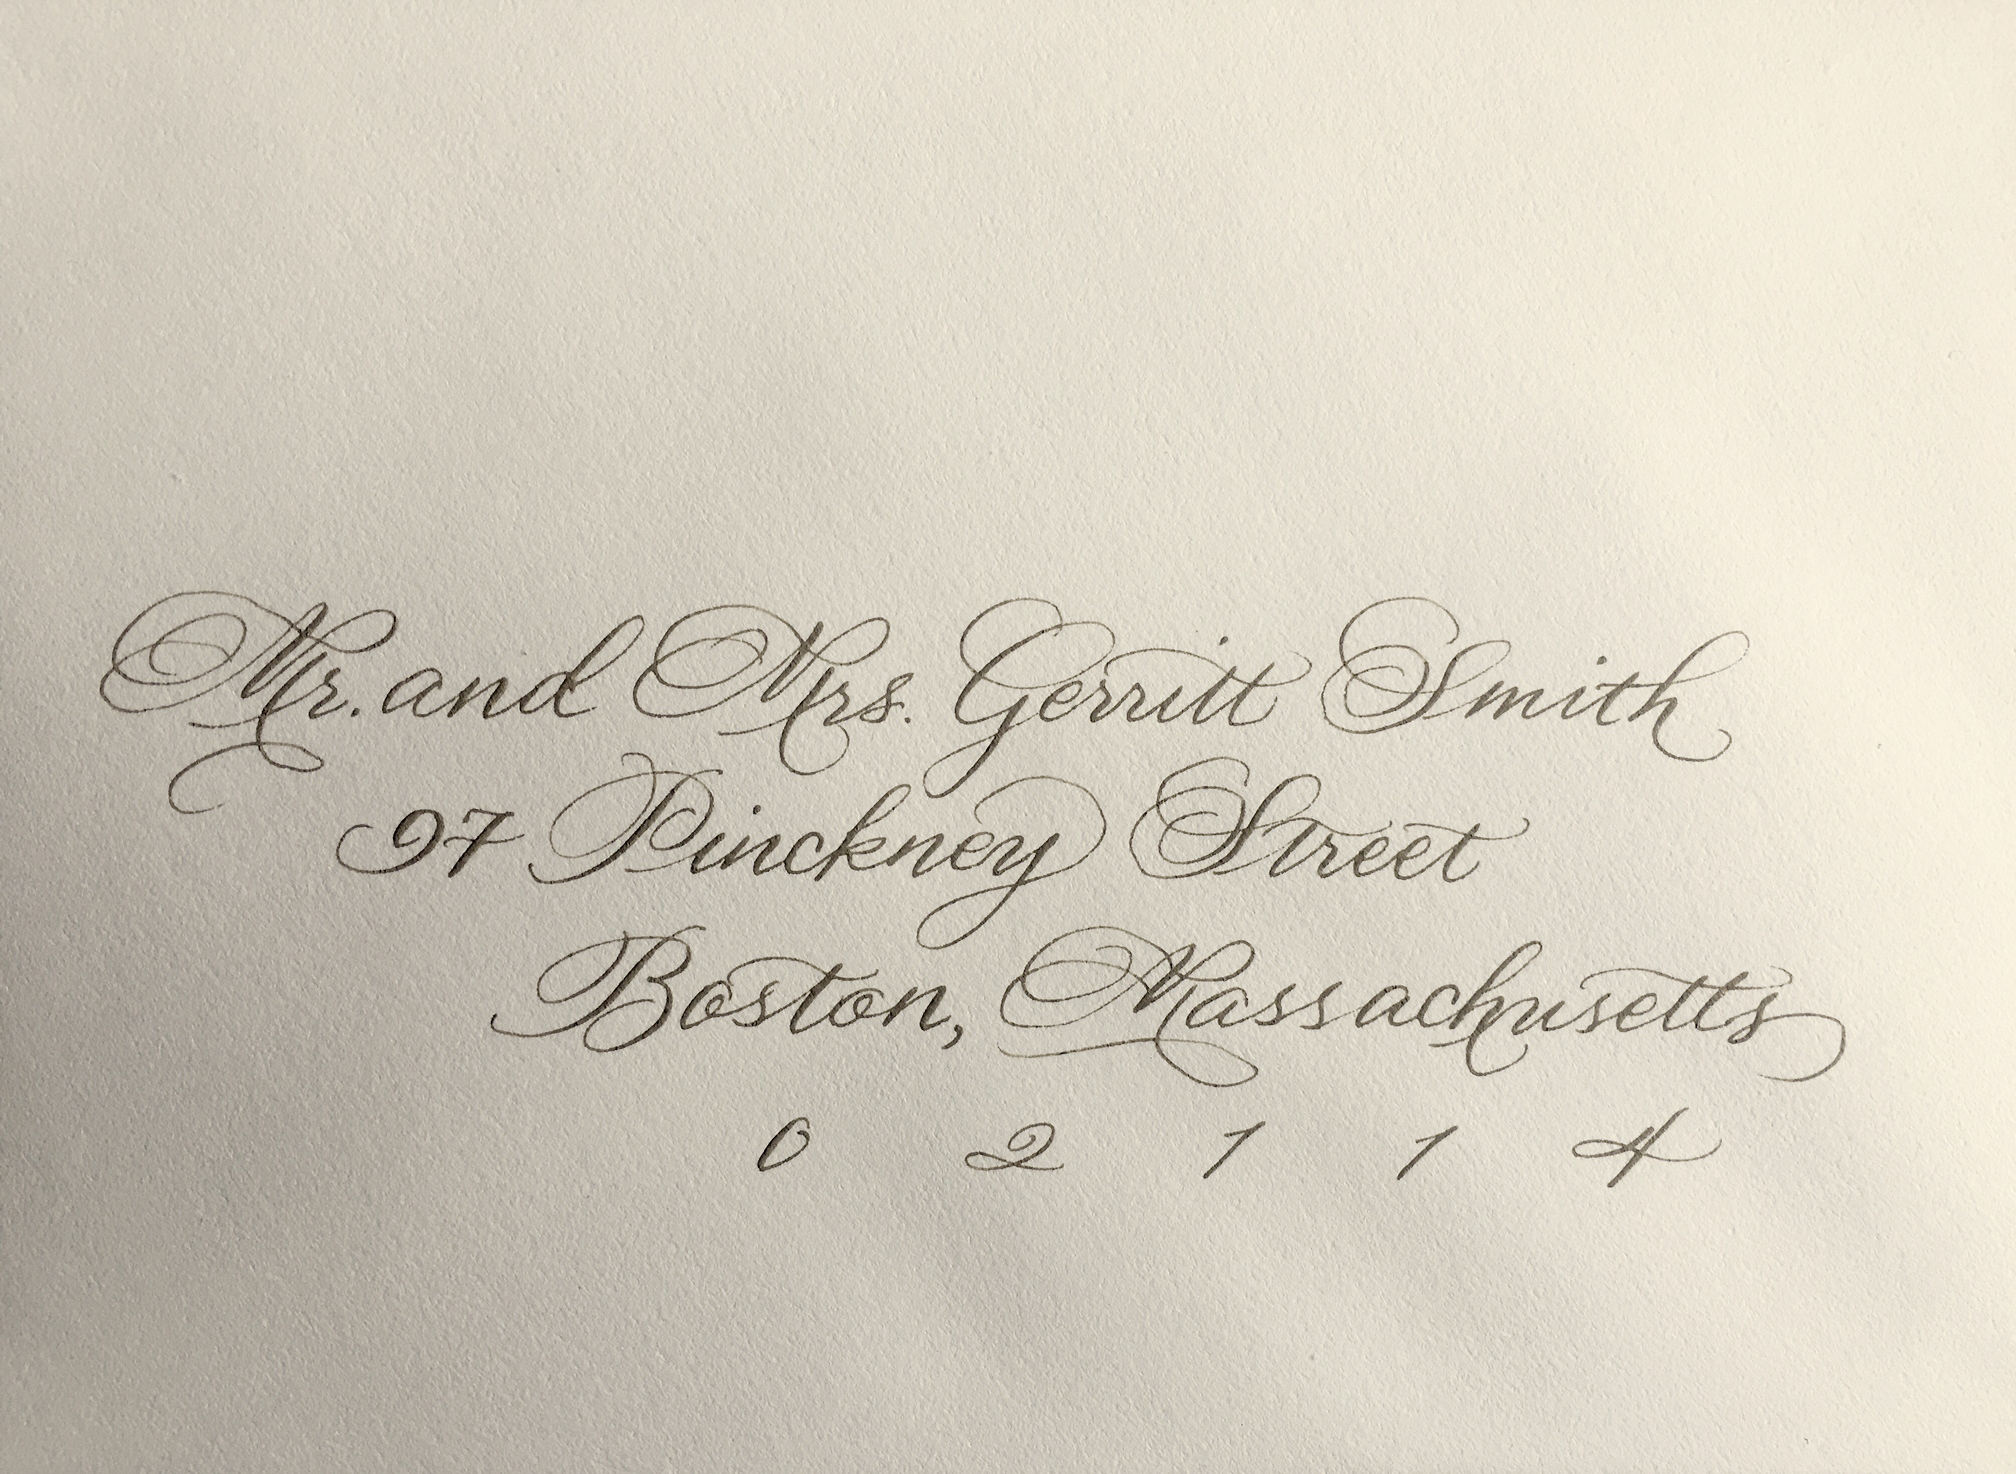 Envelope addressed in Copperlate with ornate flourishes.